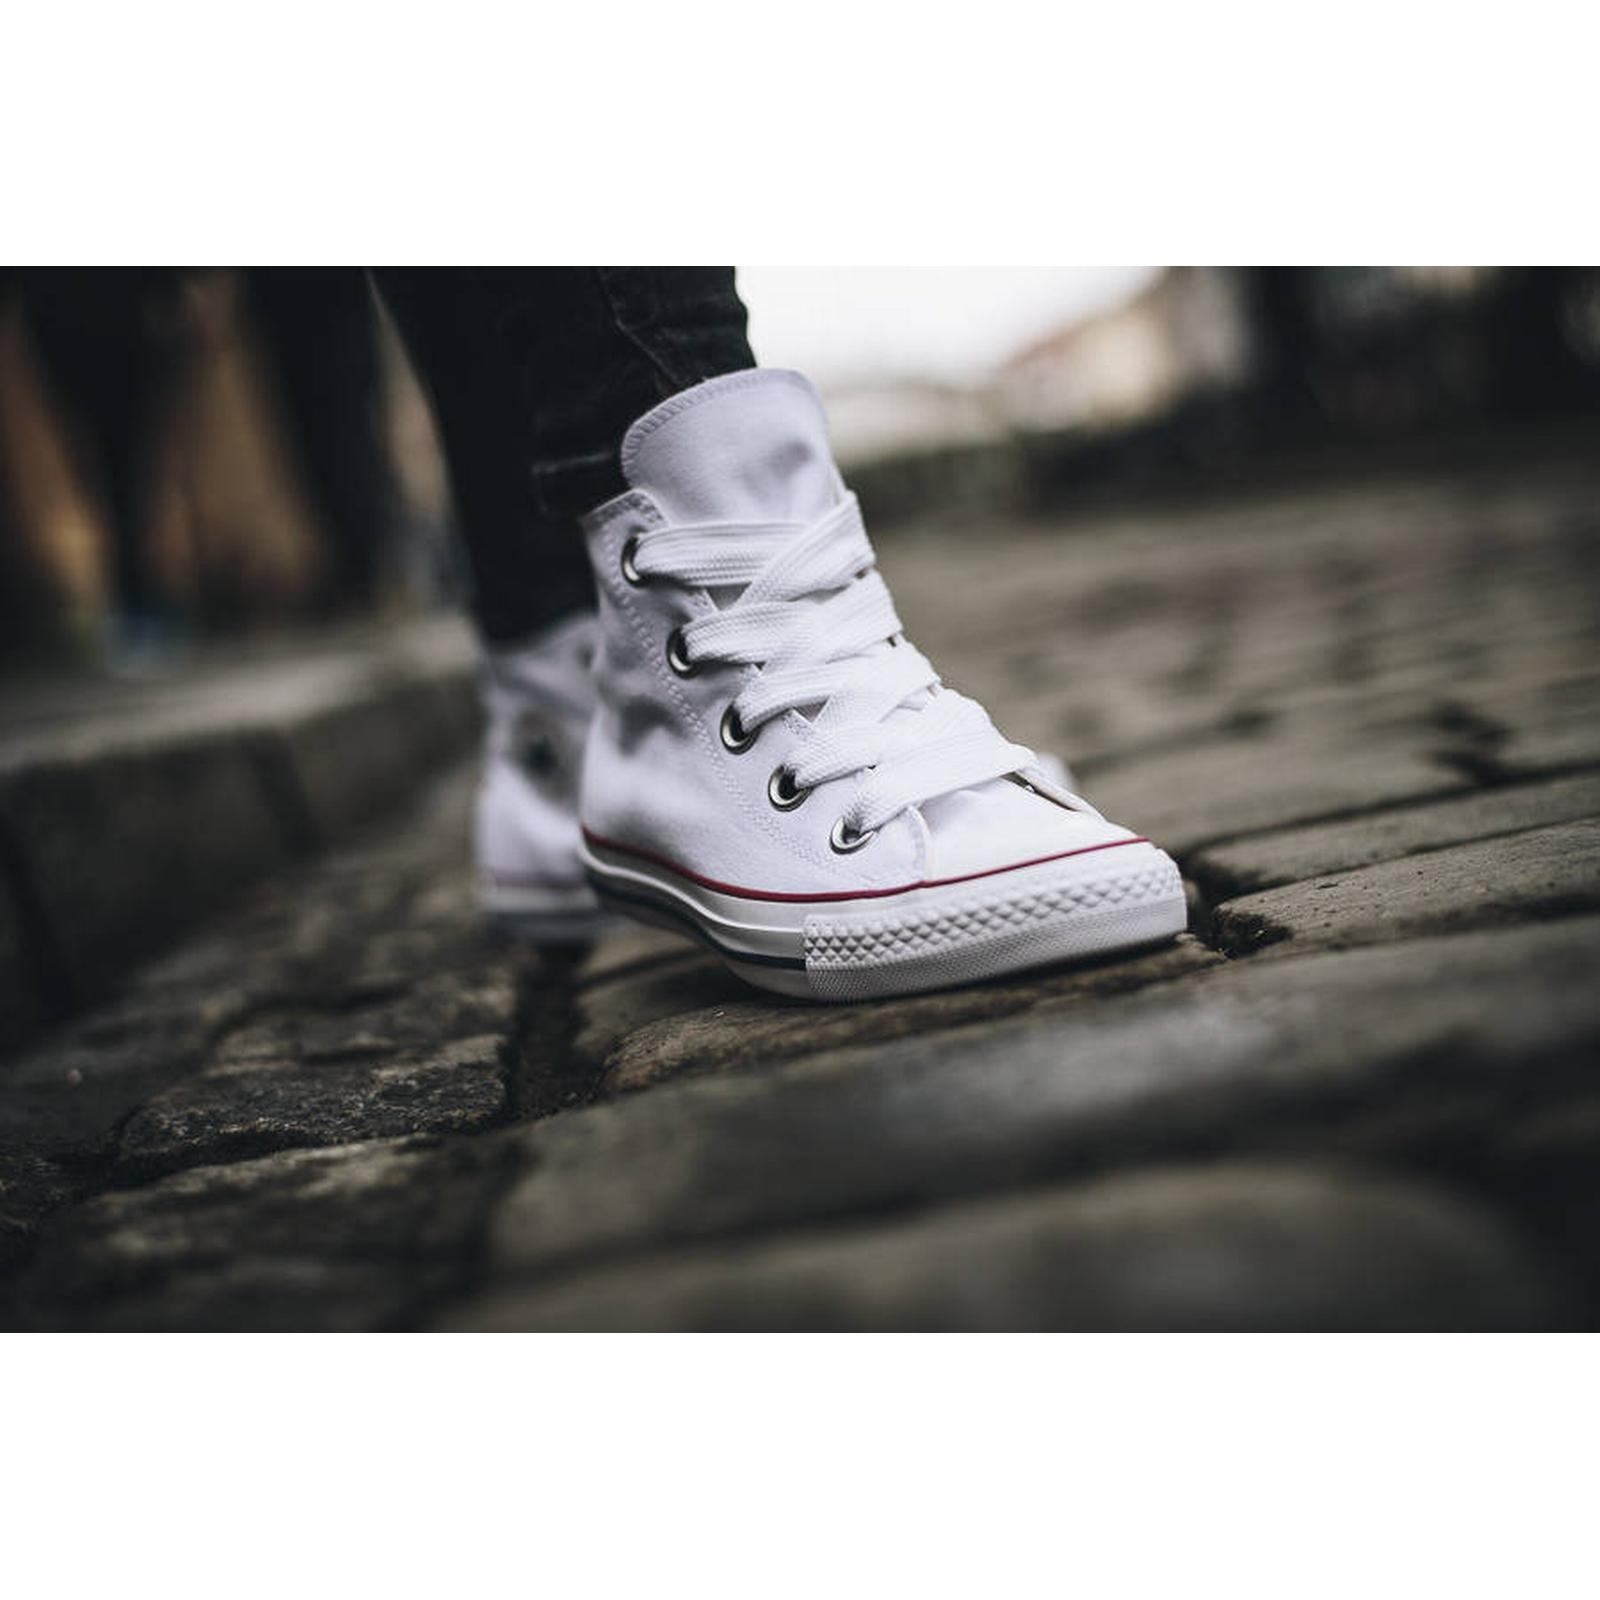 Converse Women's Shoes sneakers Converse Chuck Taylor 559933C All Star Big Eyelets 559933C Taylor WHITE Size 40 d7b3eb